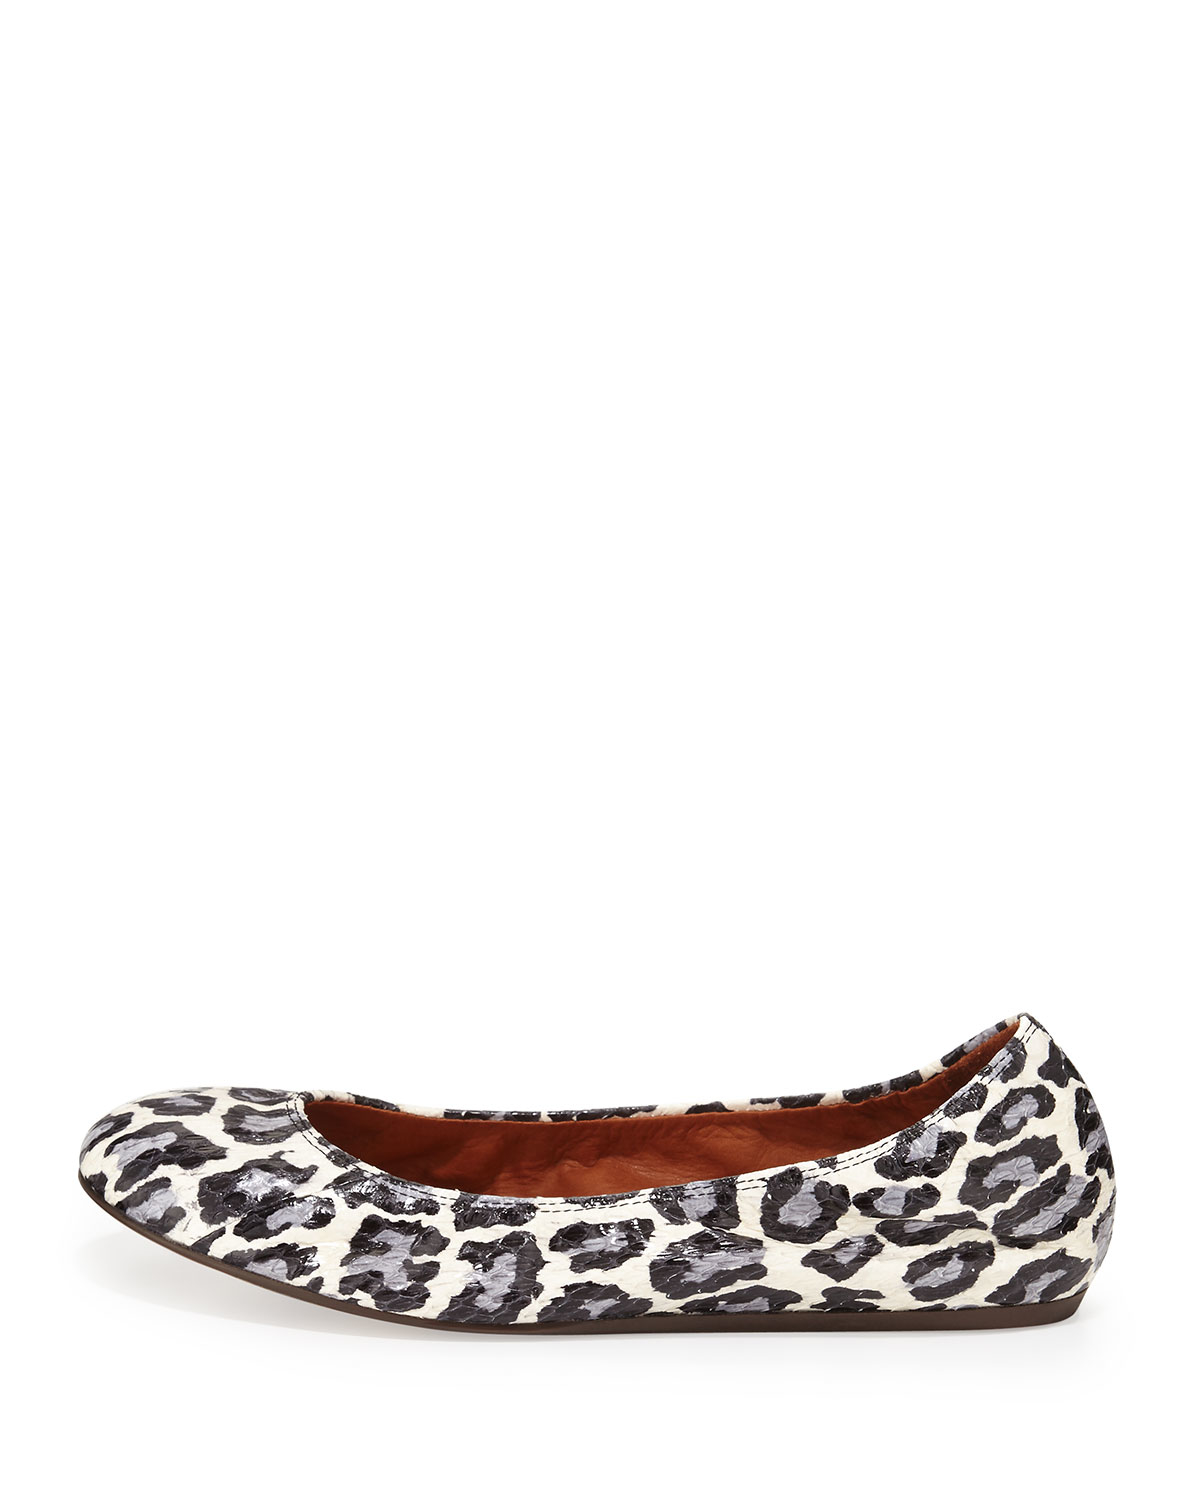 Free shipping BOTH ways on leopard print ballet flats, from our vast selection of styles. Fast delivery, and 24/7/ real-person service with a smile. Click or call